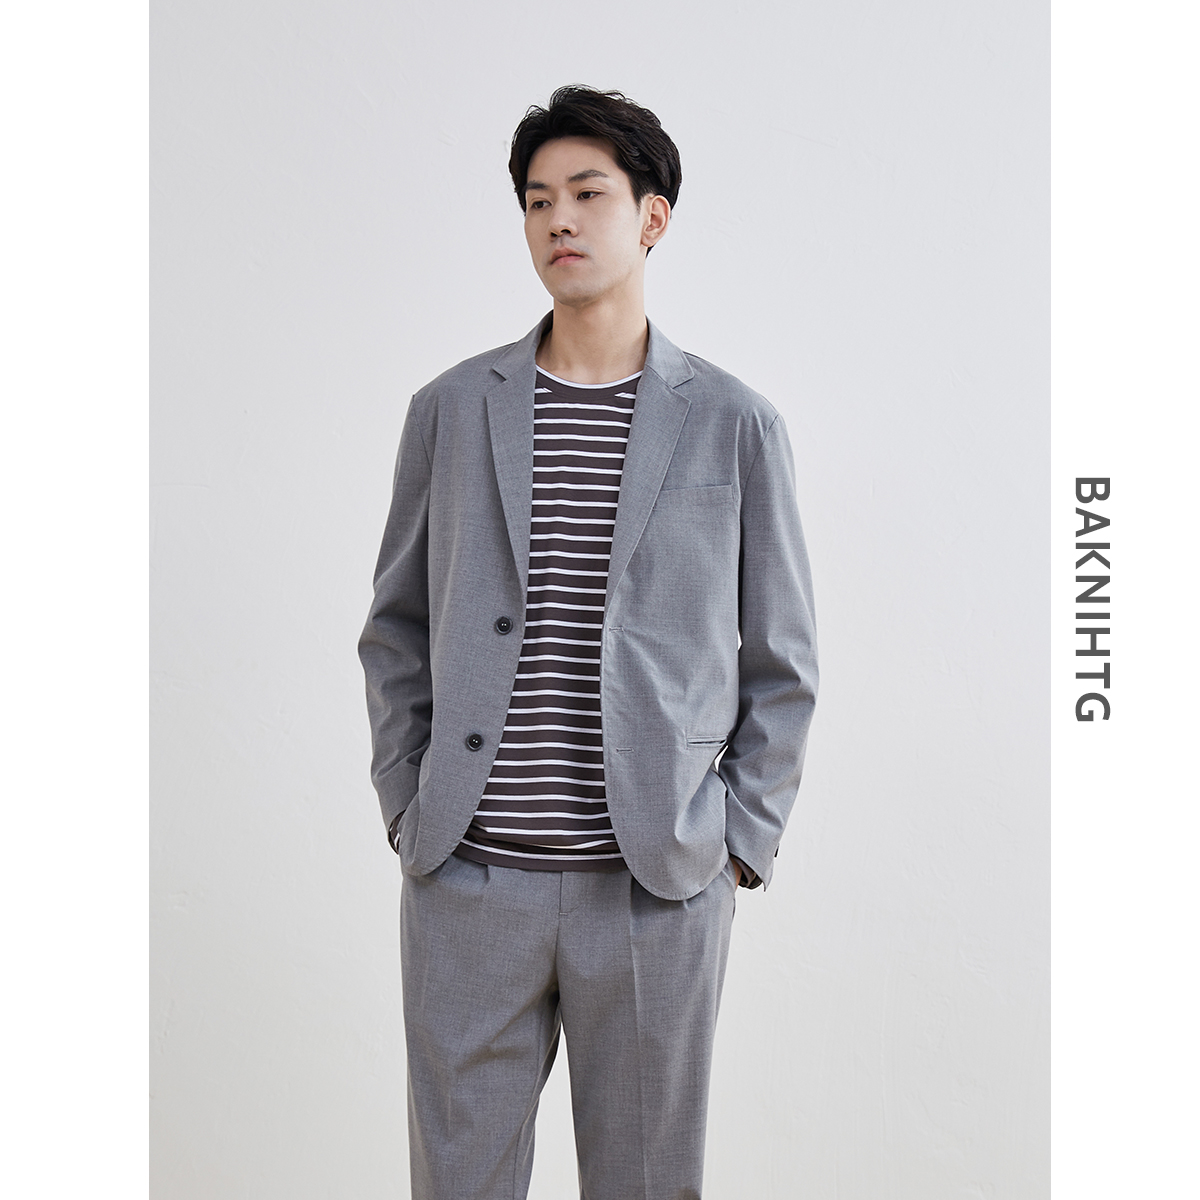 [non refundable after closing store] mens suit double breasted suit casual suit top single loose coat